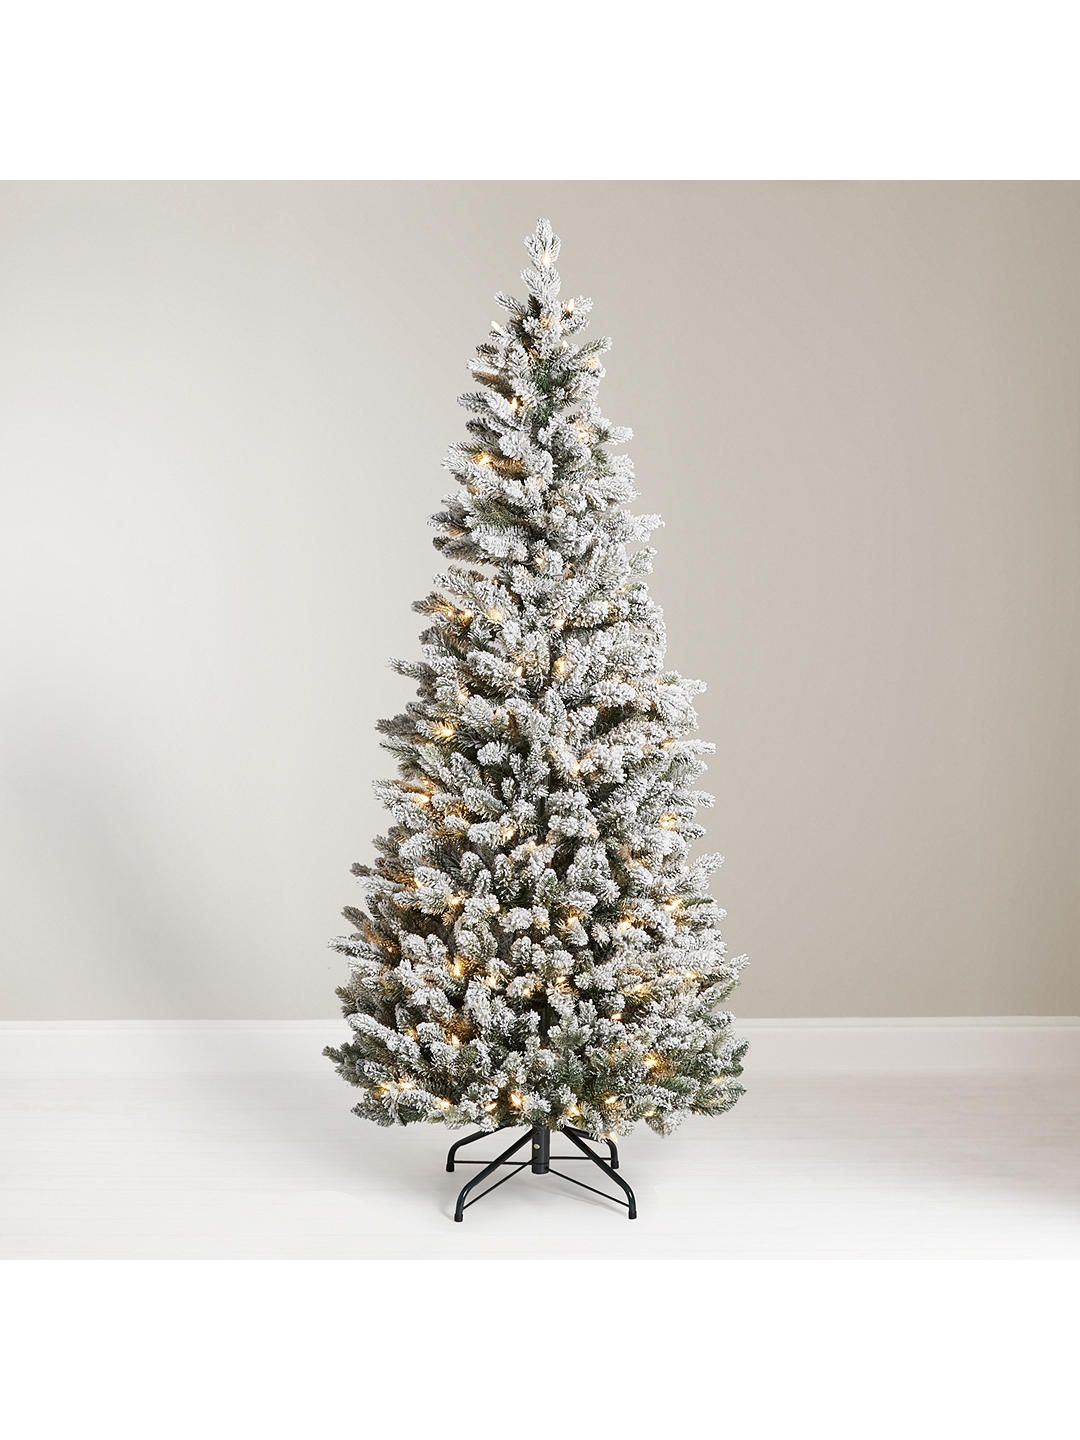 where to buy a good pop up christmas tree pre lit pop up christmas tree - Pre Decorated Pop Up Christmas Trees